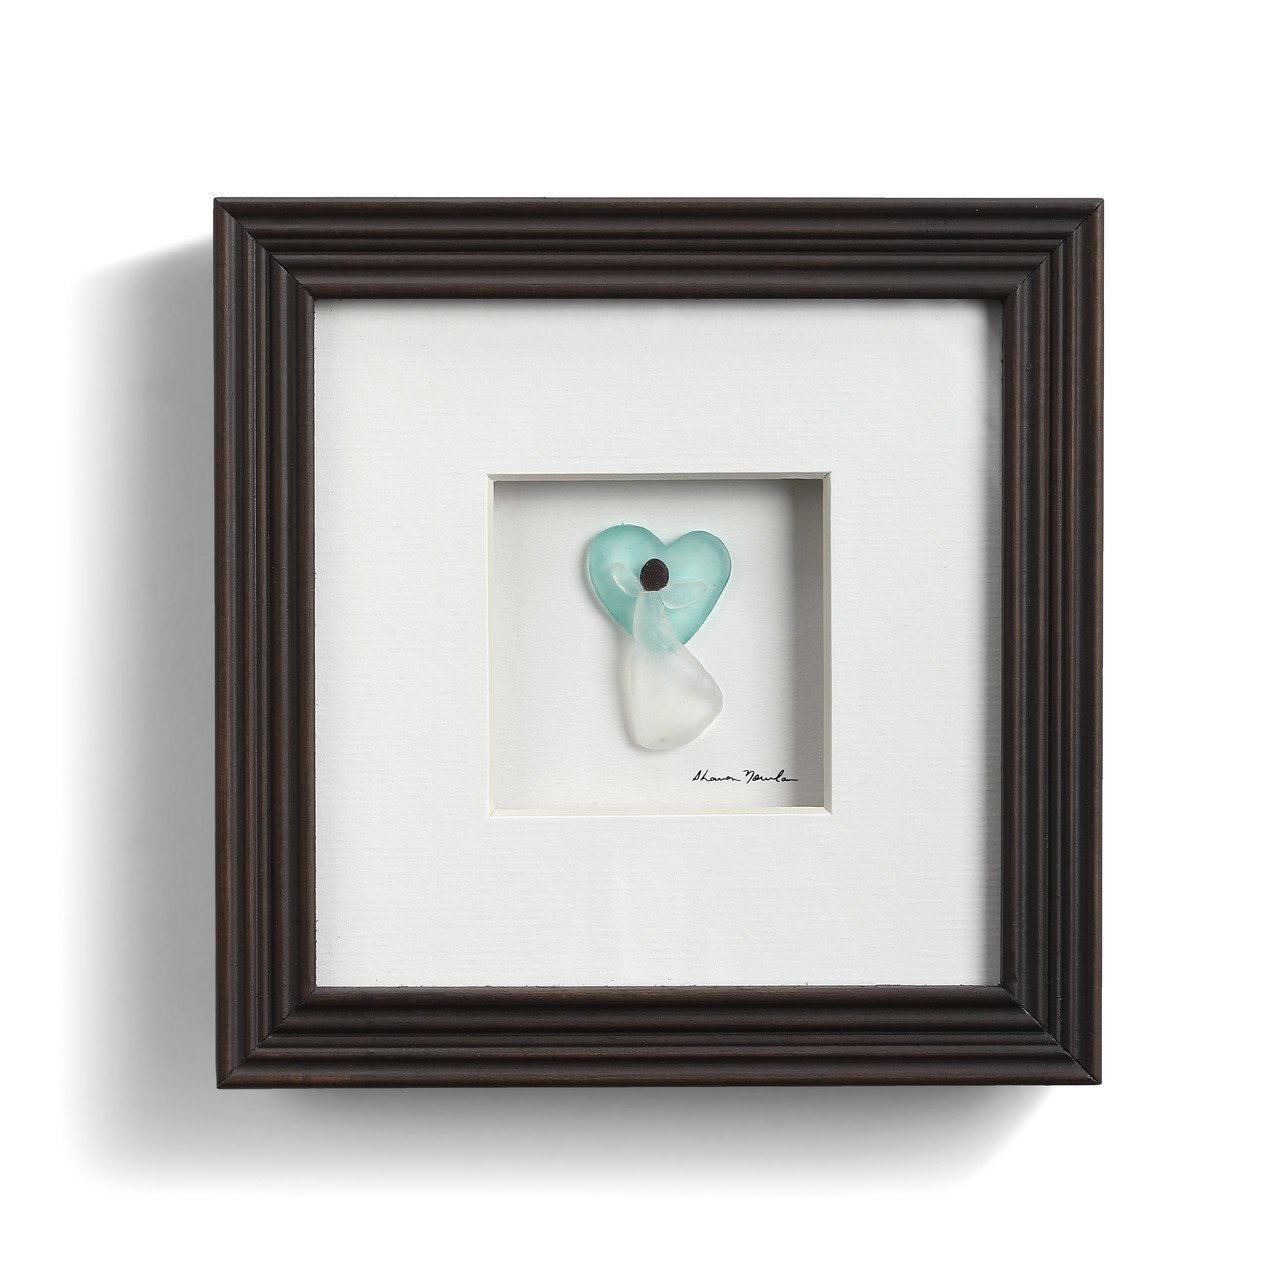 IN MY HEART - 6 INCH WALL ART 1004370074 - Molly's! A Chic and Unique Boutique